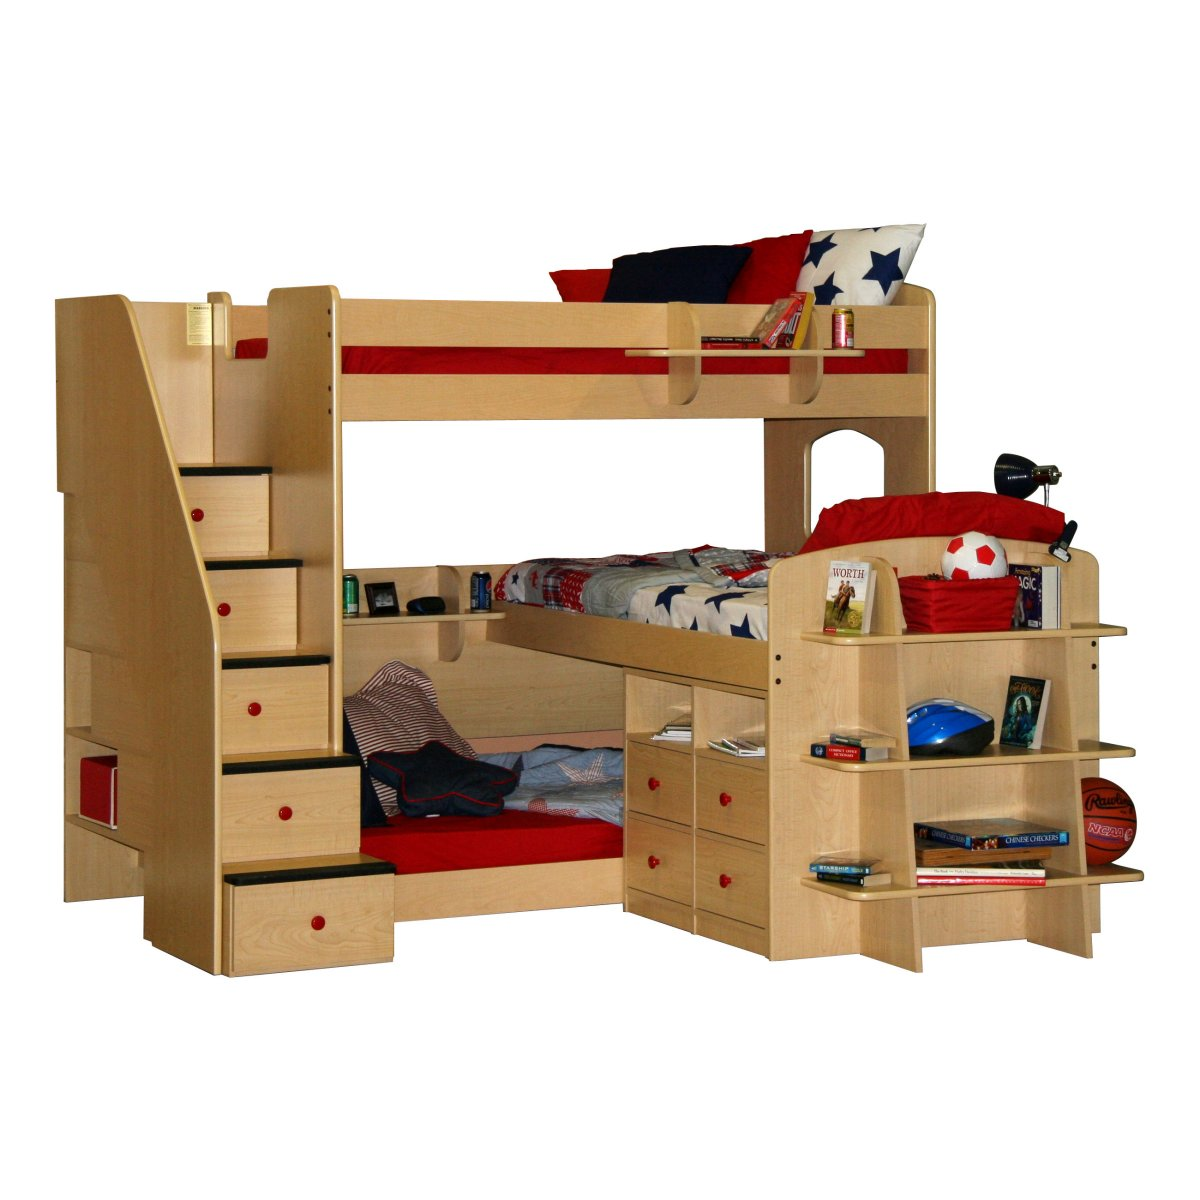 Triple Bunk Bed Furniture 1200 x 1200